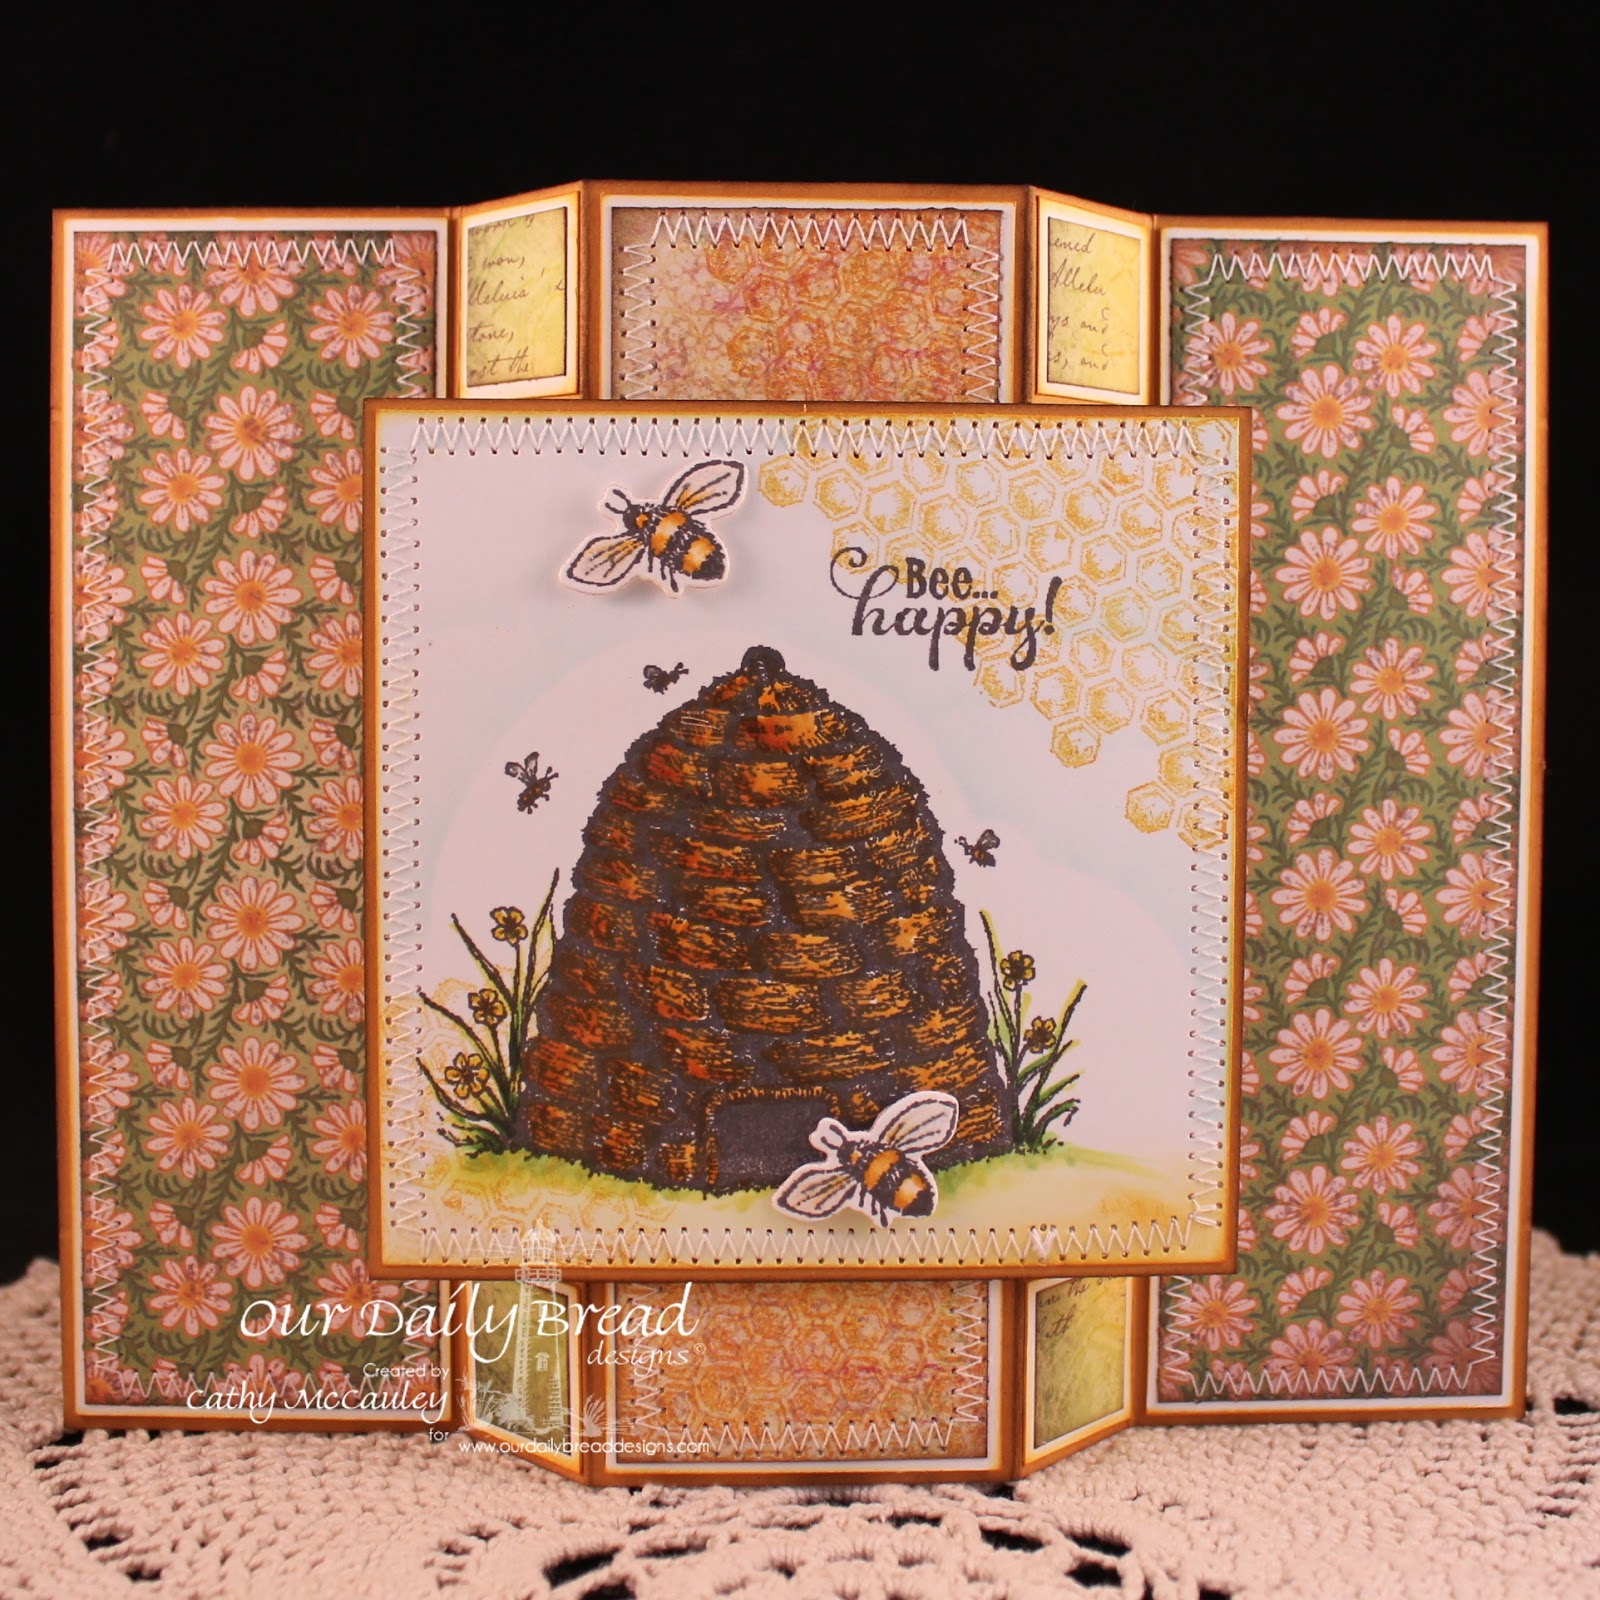 Stamps - Our Daily Bread Designs Bee Happy, Honeycomb Mini, ODBD Blooming Garden Paper Collection, ODBD Custom Zinnia and Leaves Die